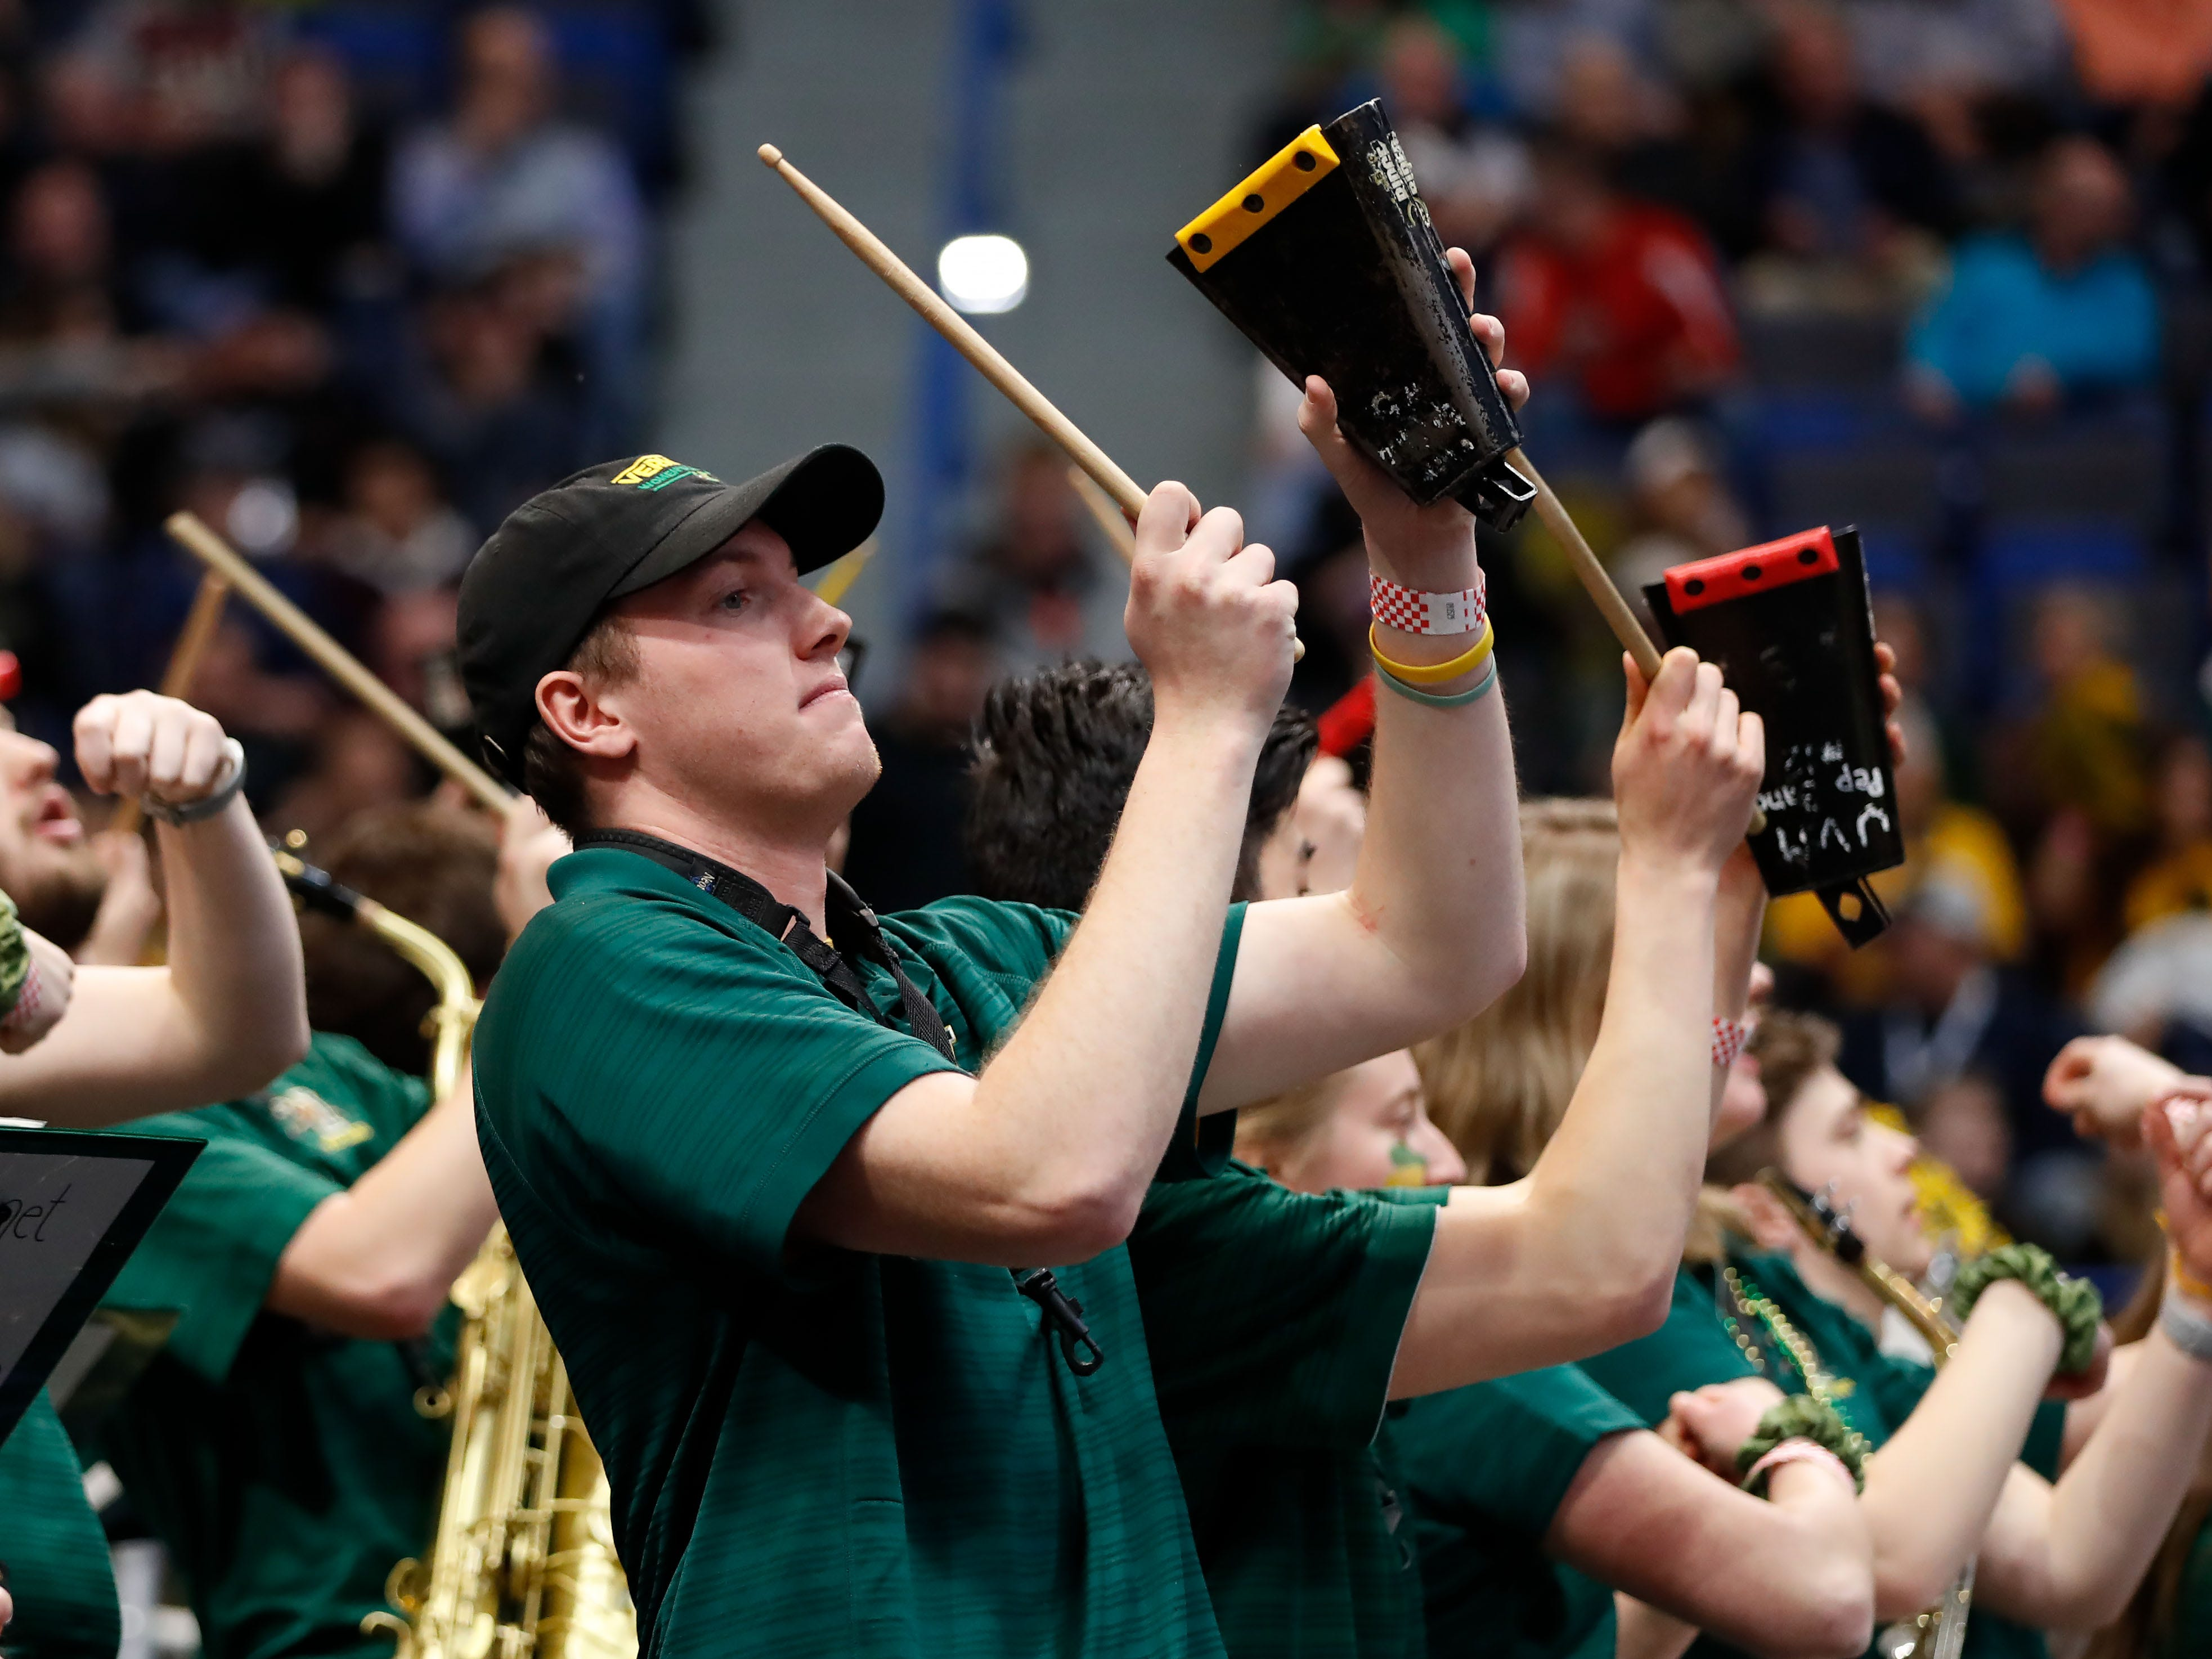 Mar 21, 2019; Hartford, CT, USA; The Vermont Catamounts band cheers during the first half of a game against the Florida State Seminoles in the first round of the 2019 NCAA Tournament at XL Center. Mandatory Credit: David Butler II-USA TODAY Sports